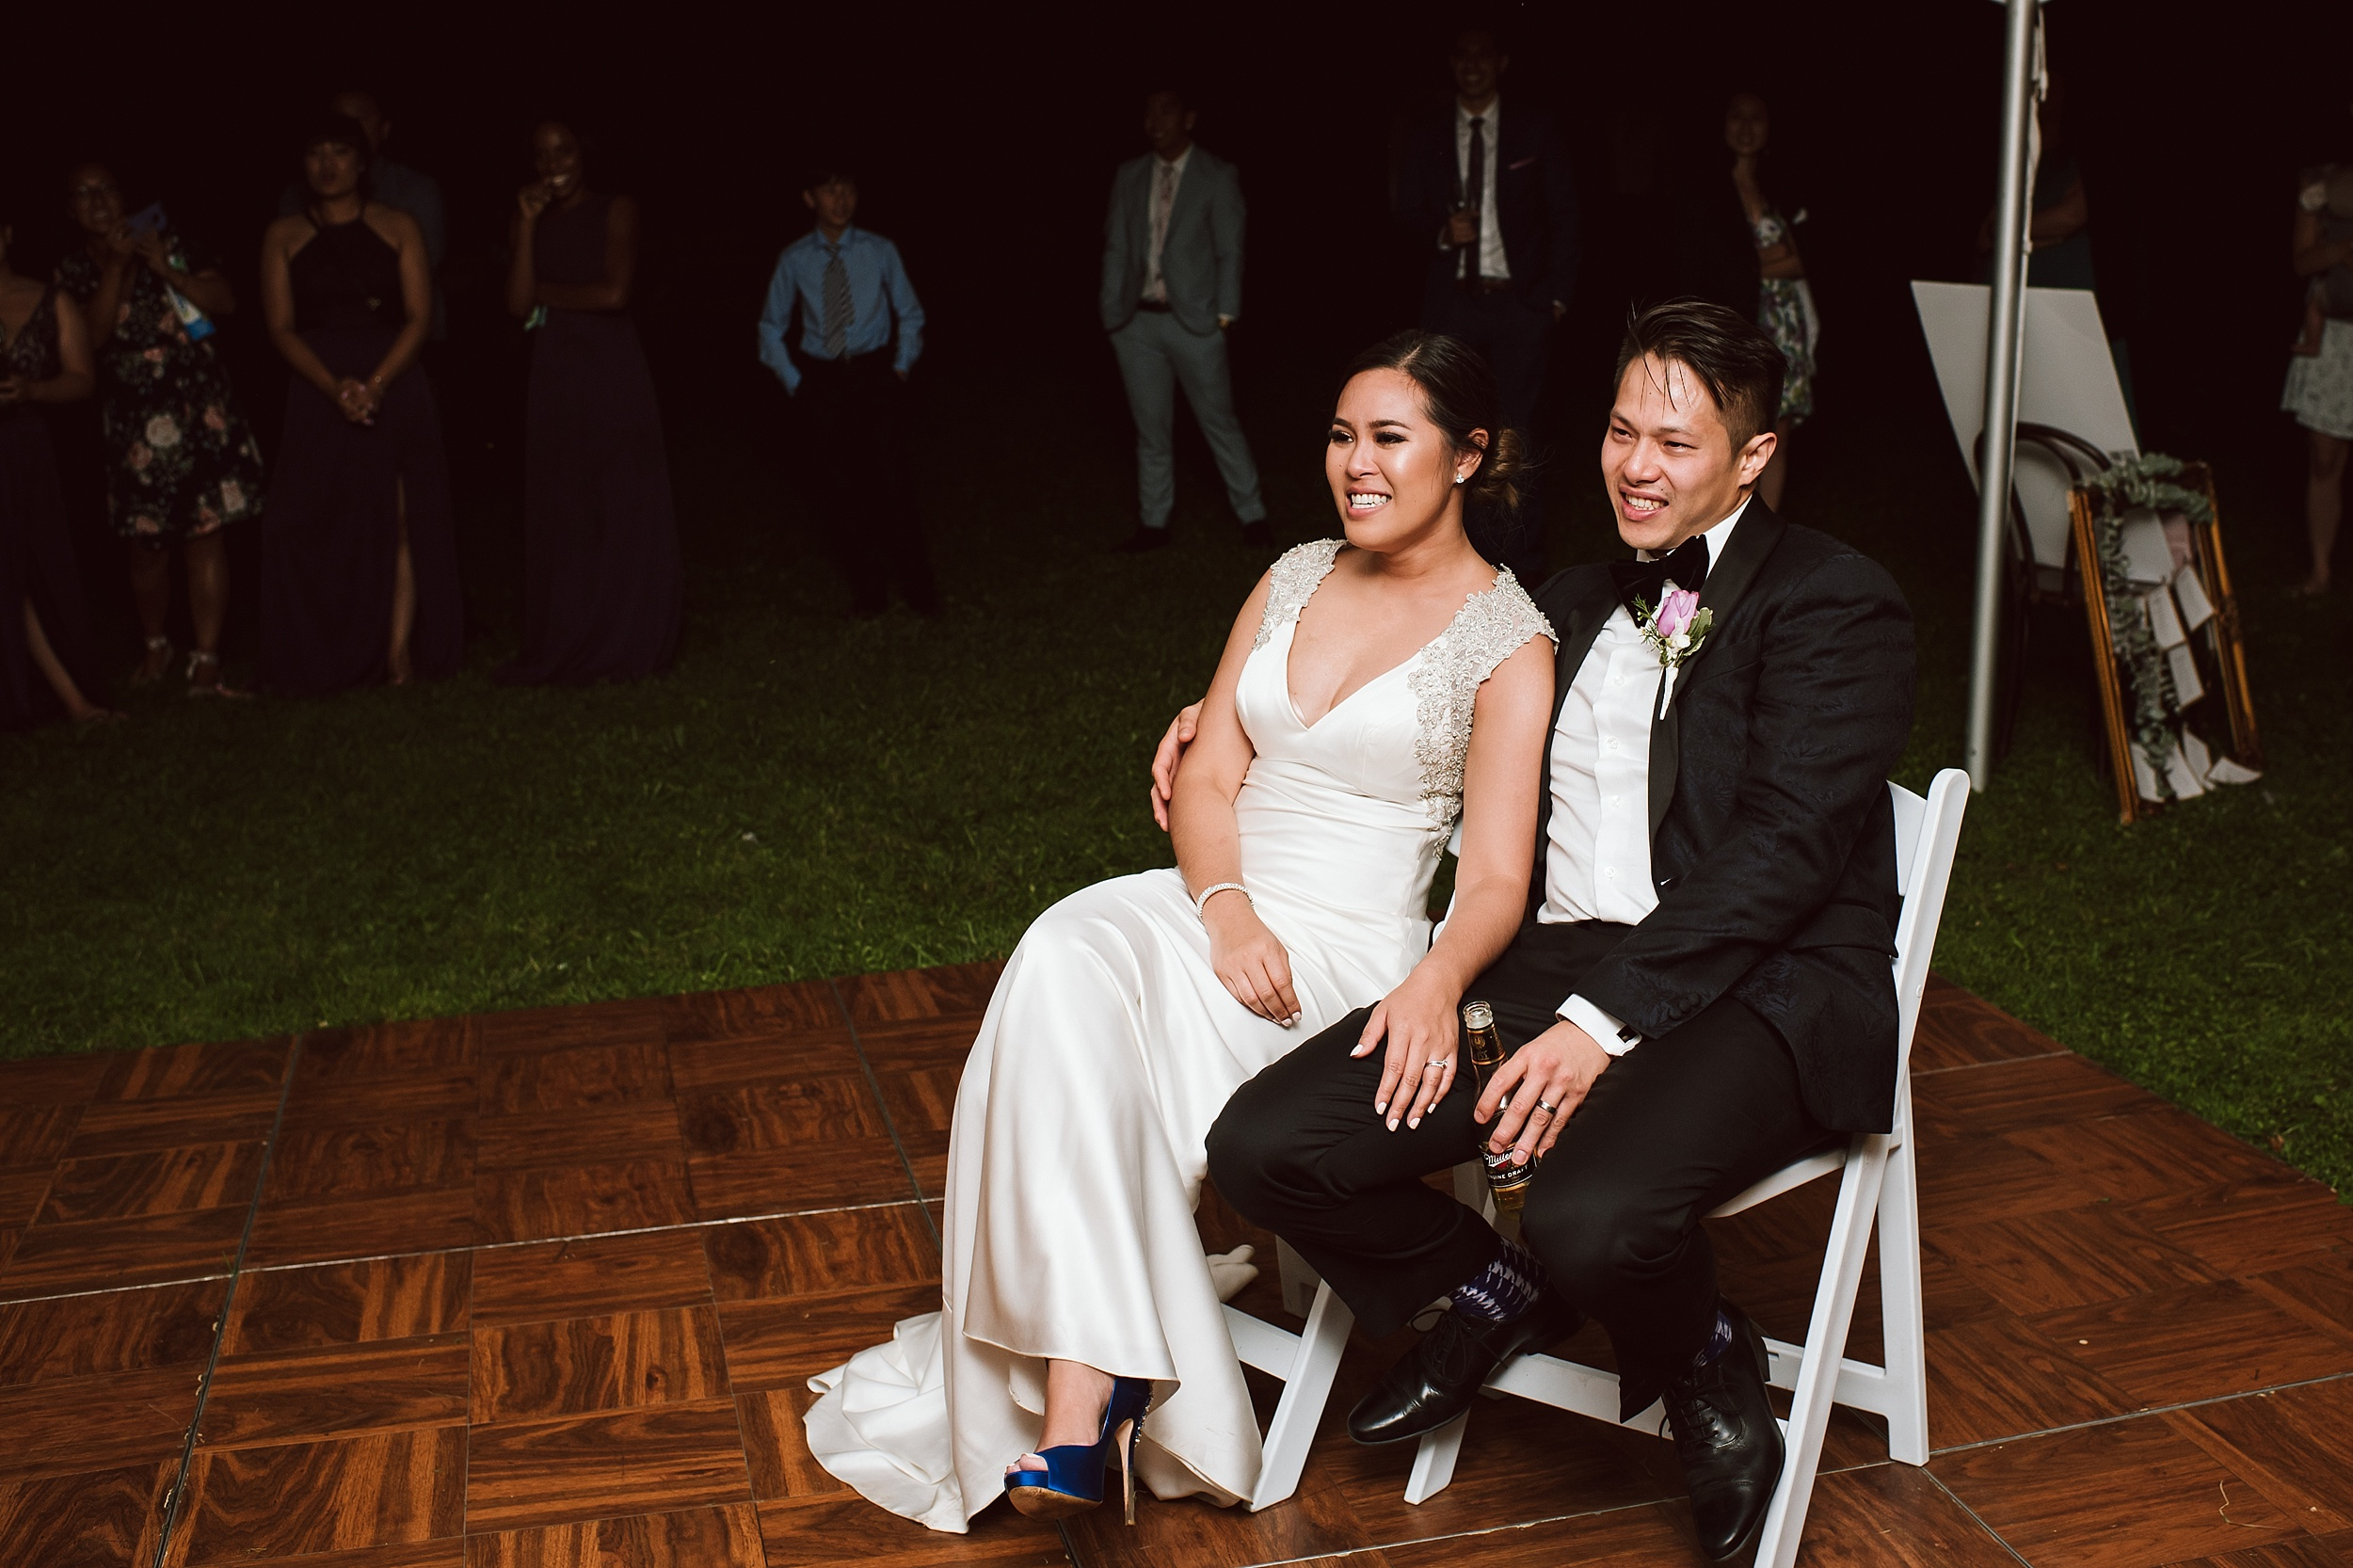 Hartman_Gallery_Mount_Albert_Toronto_Wedding_Photographer_0070.jpg